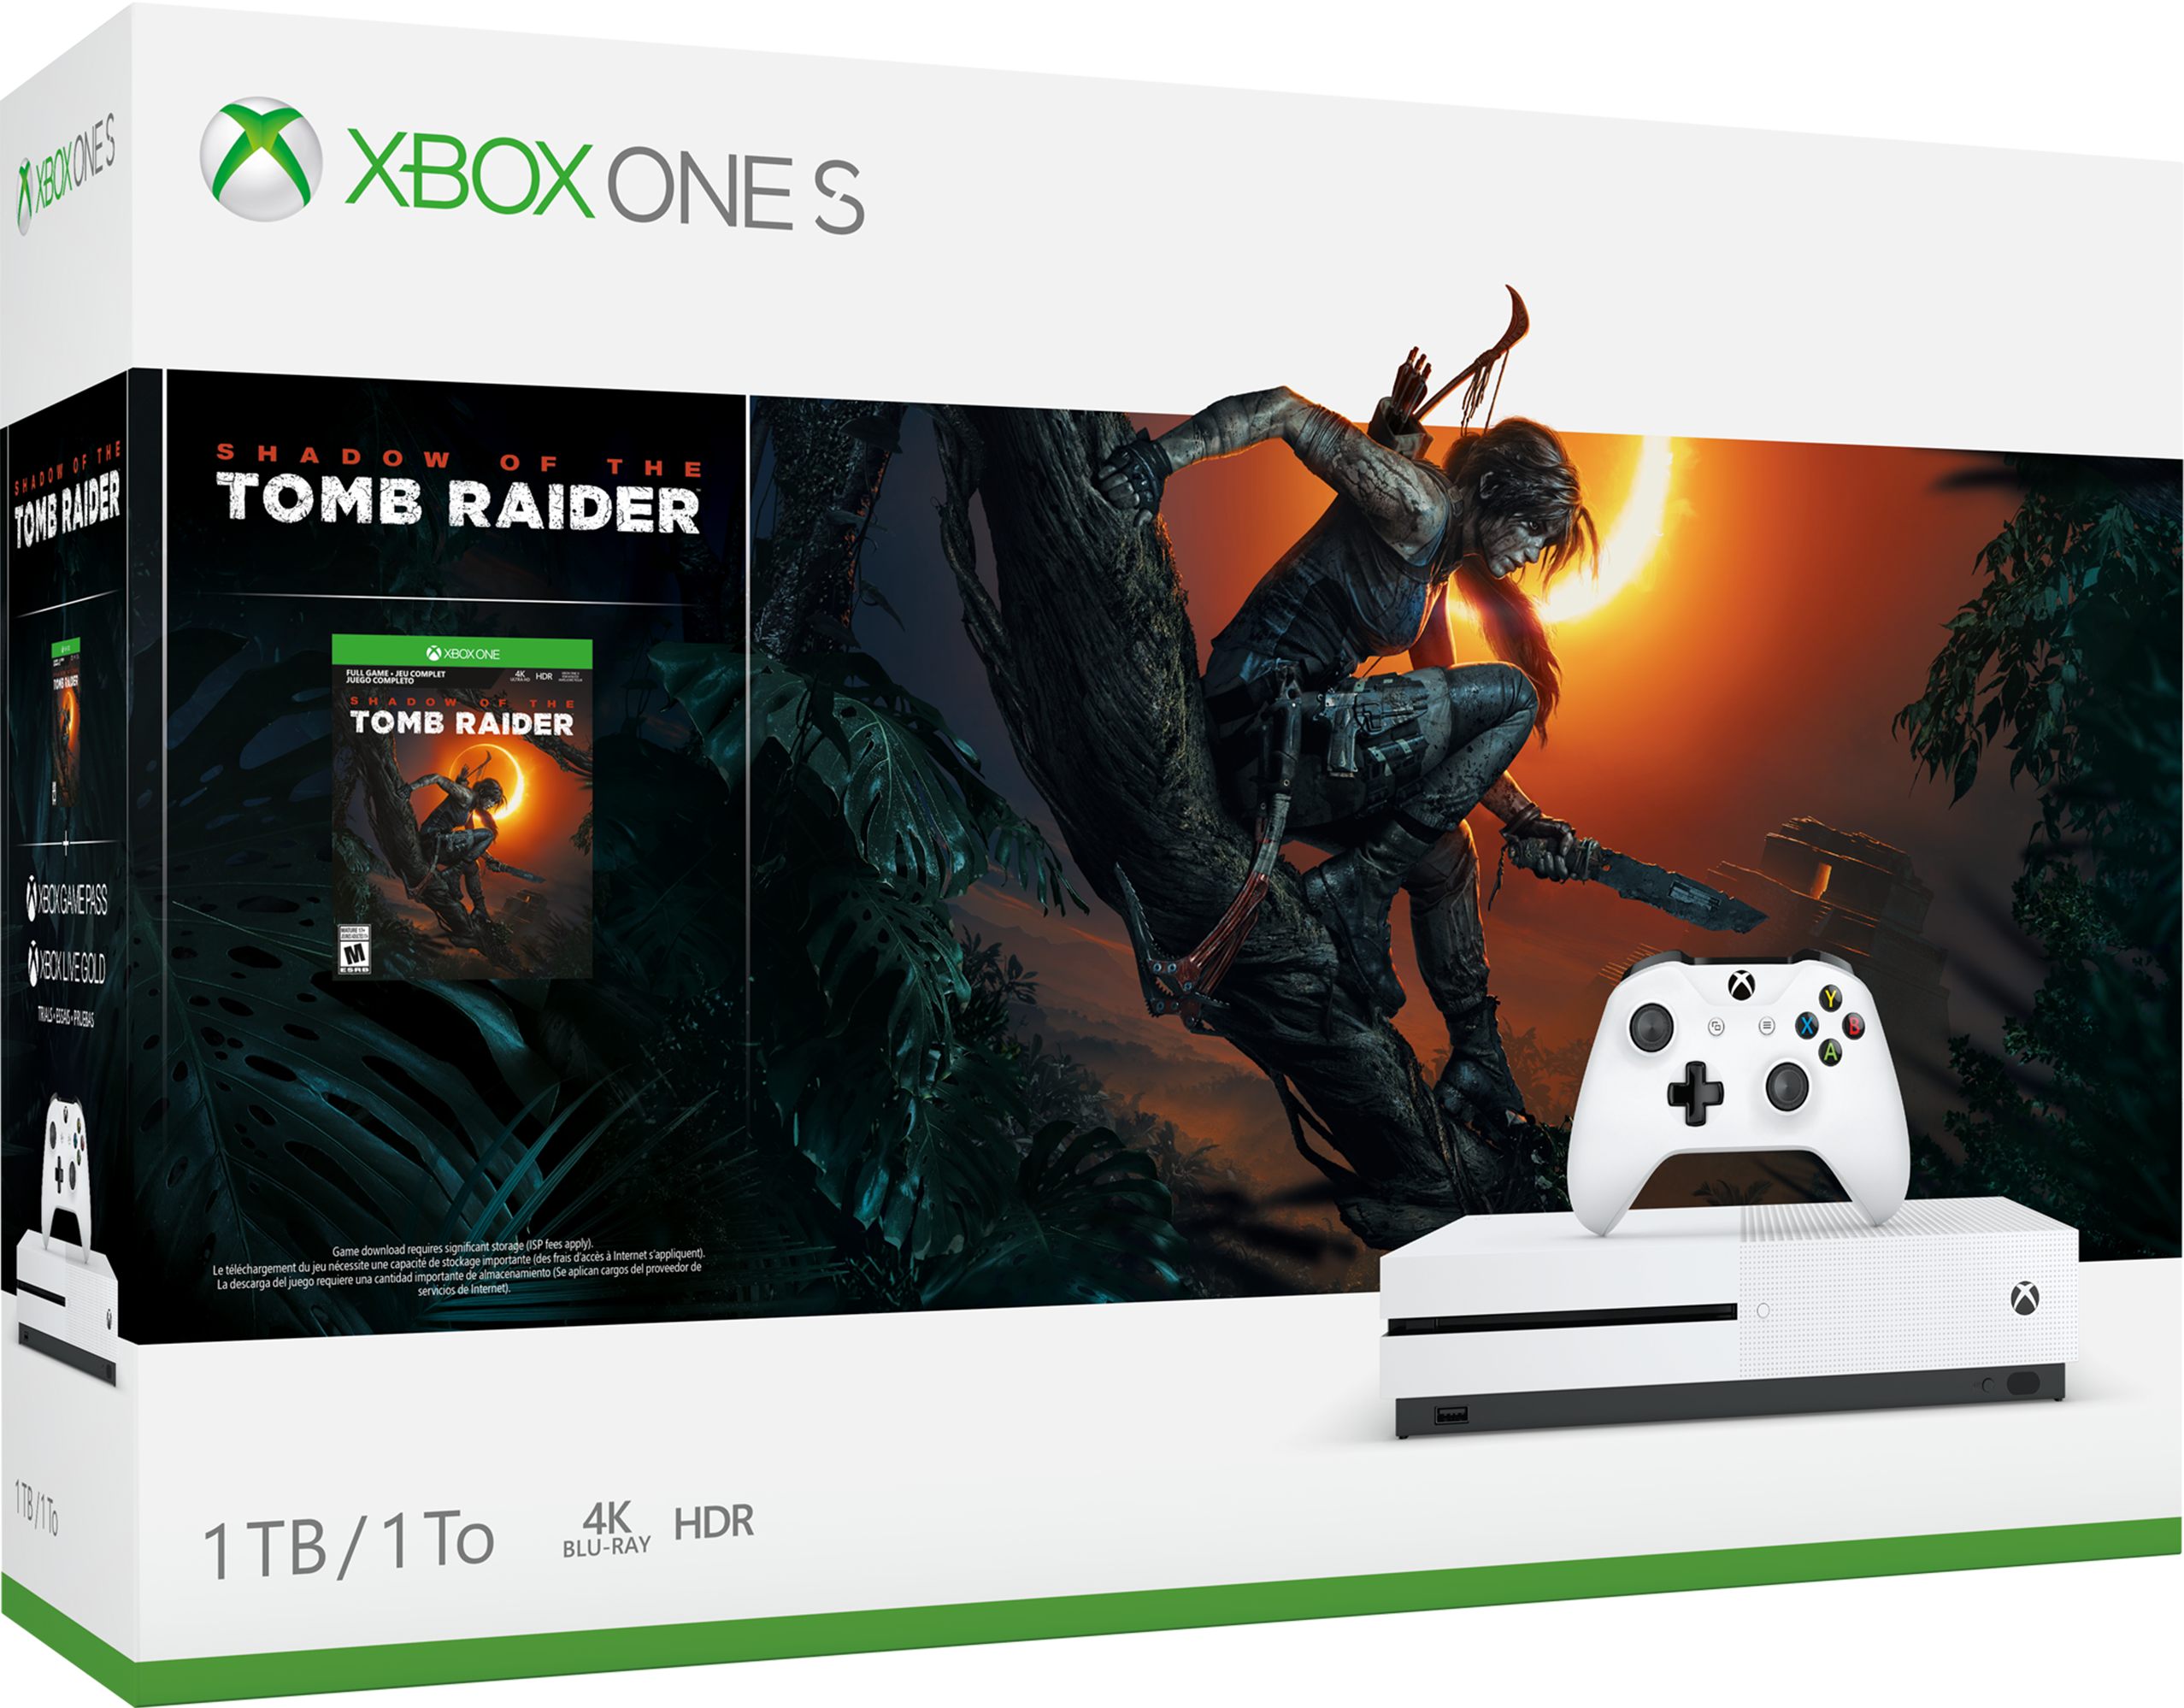 マイクロソフト♪Xbox One S 1 TB Console - Shadow of the Tomb Raider 同梱版♪32978円♪